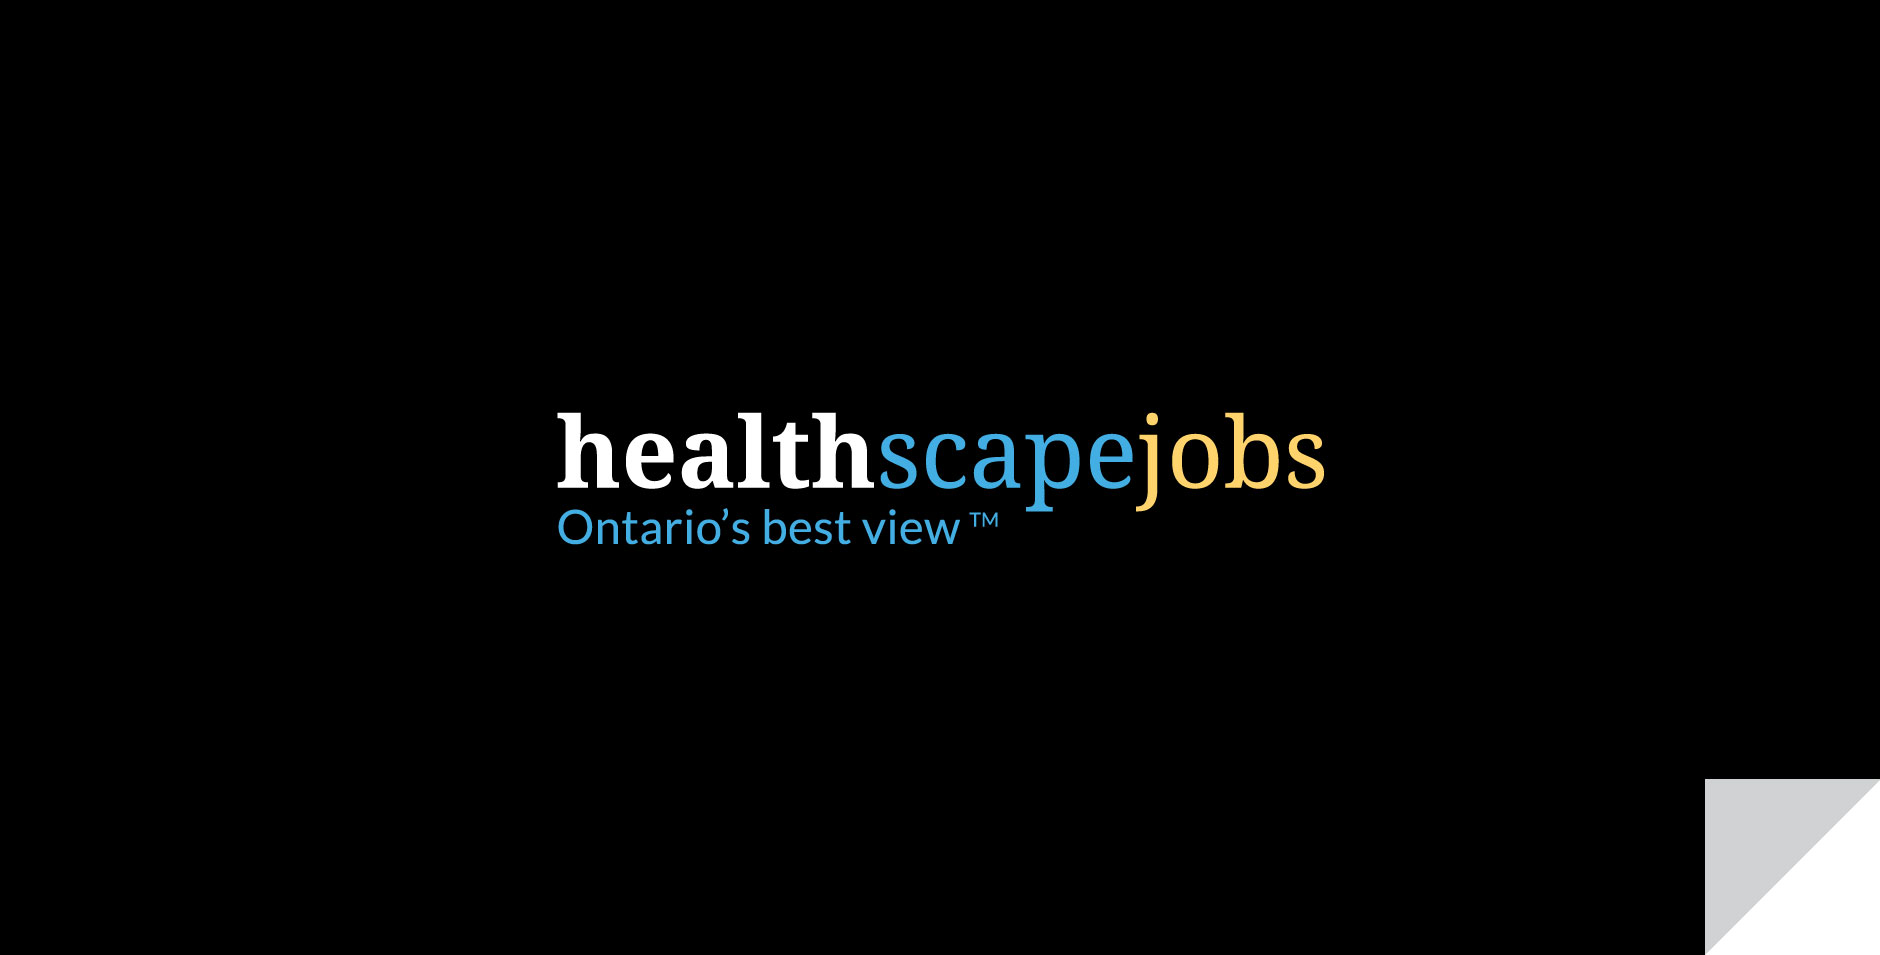 Healthscape jobs logo